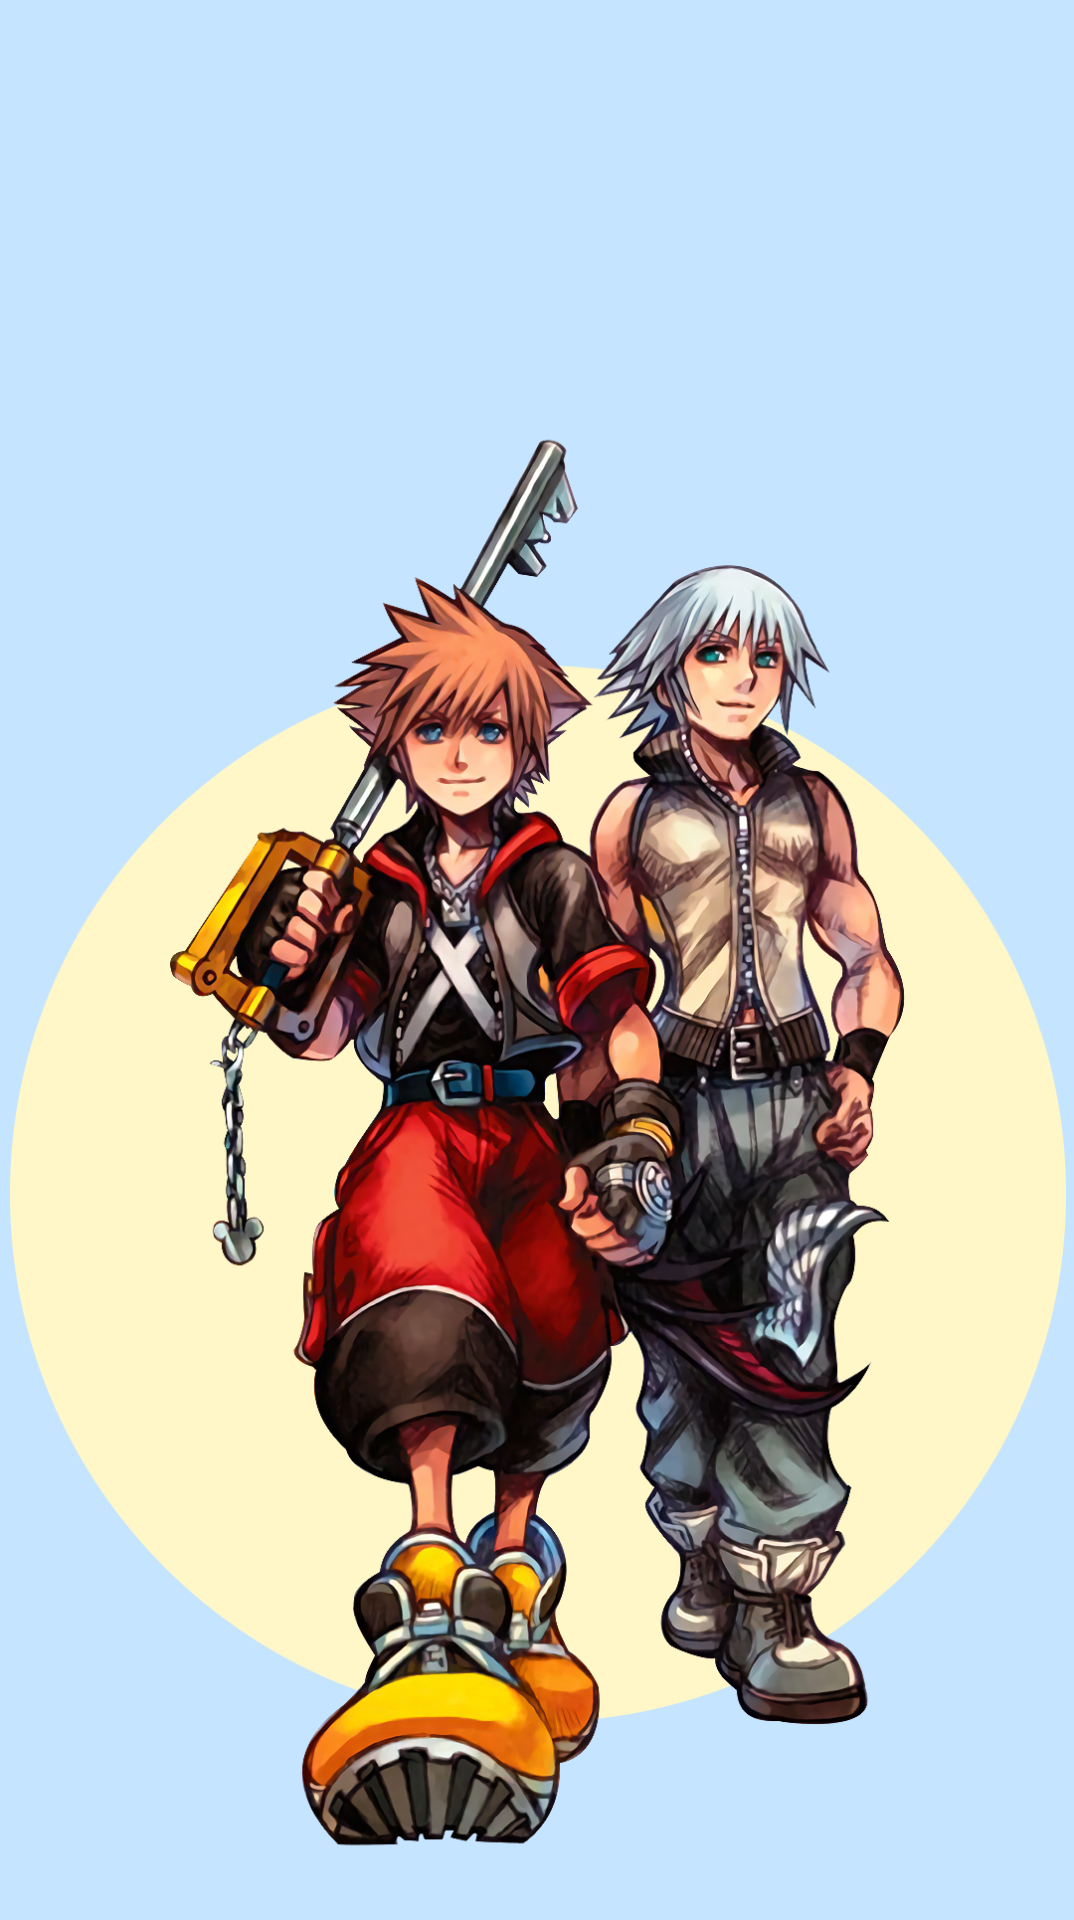 Kingdom Hearts Ray of Hope edition Backgrounds